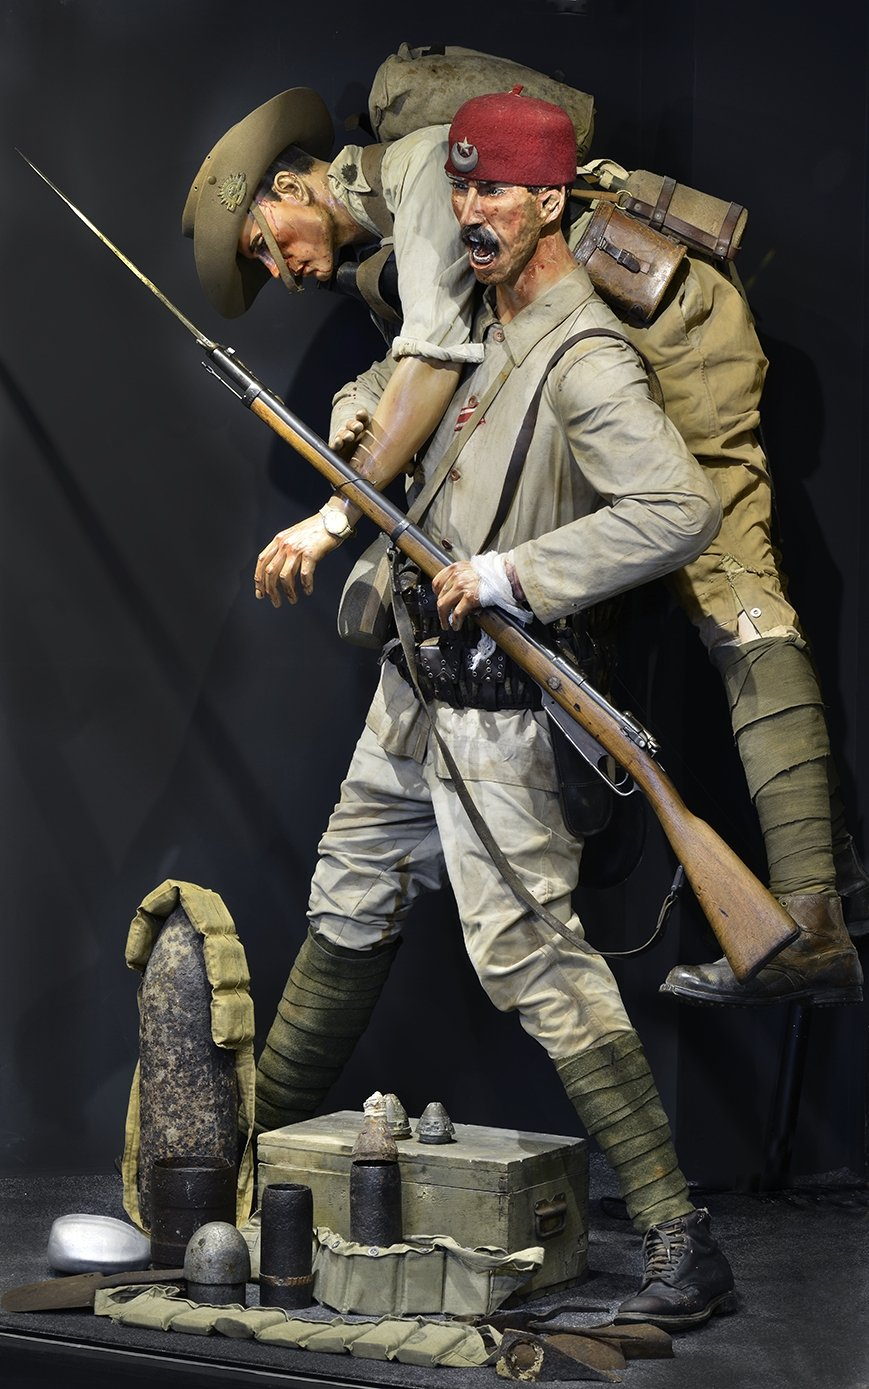 A model of ta Turkish soldier carrying an Anzac soldier from Hisart Live History Museum. (Courtesy of Hisart Live History Museum)